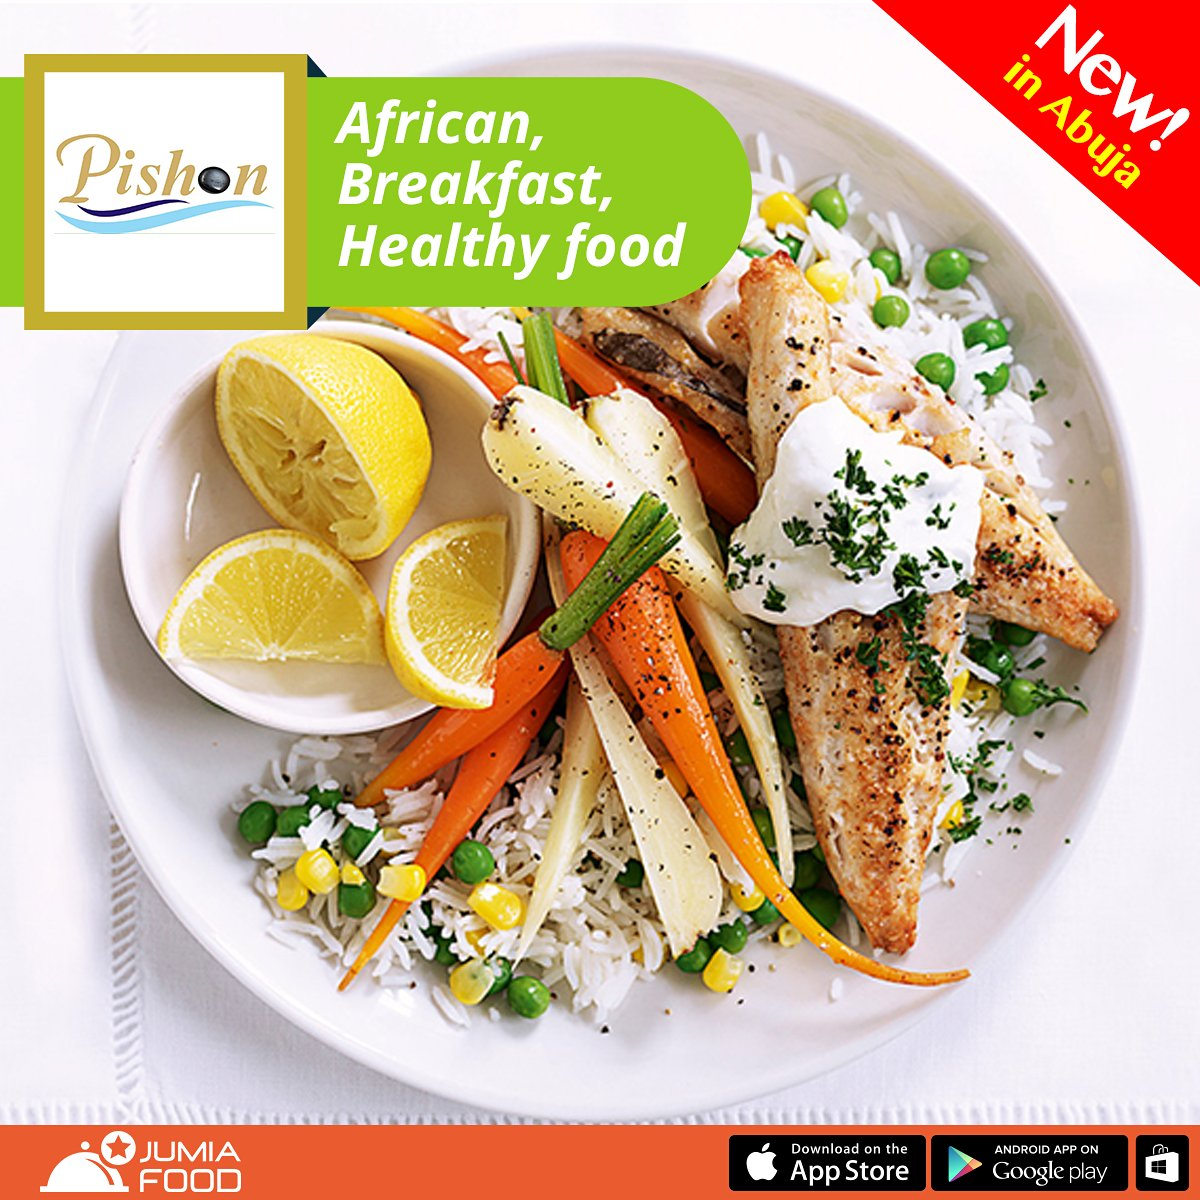 Jumia food nigeria on twitter in abuja order breakfast and every jumia food nigeria on twitter in abuja order breakfast and every meal from pishon gourmet on jumia food httpstwmvspf7zwn is your link forumfinder Image collections